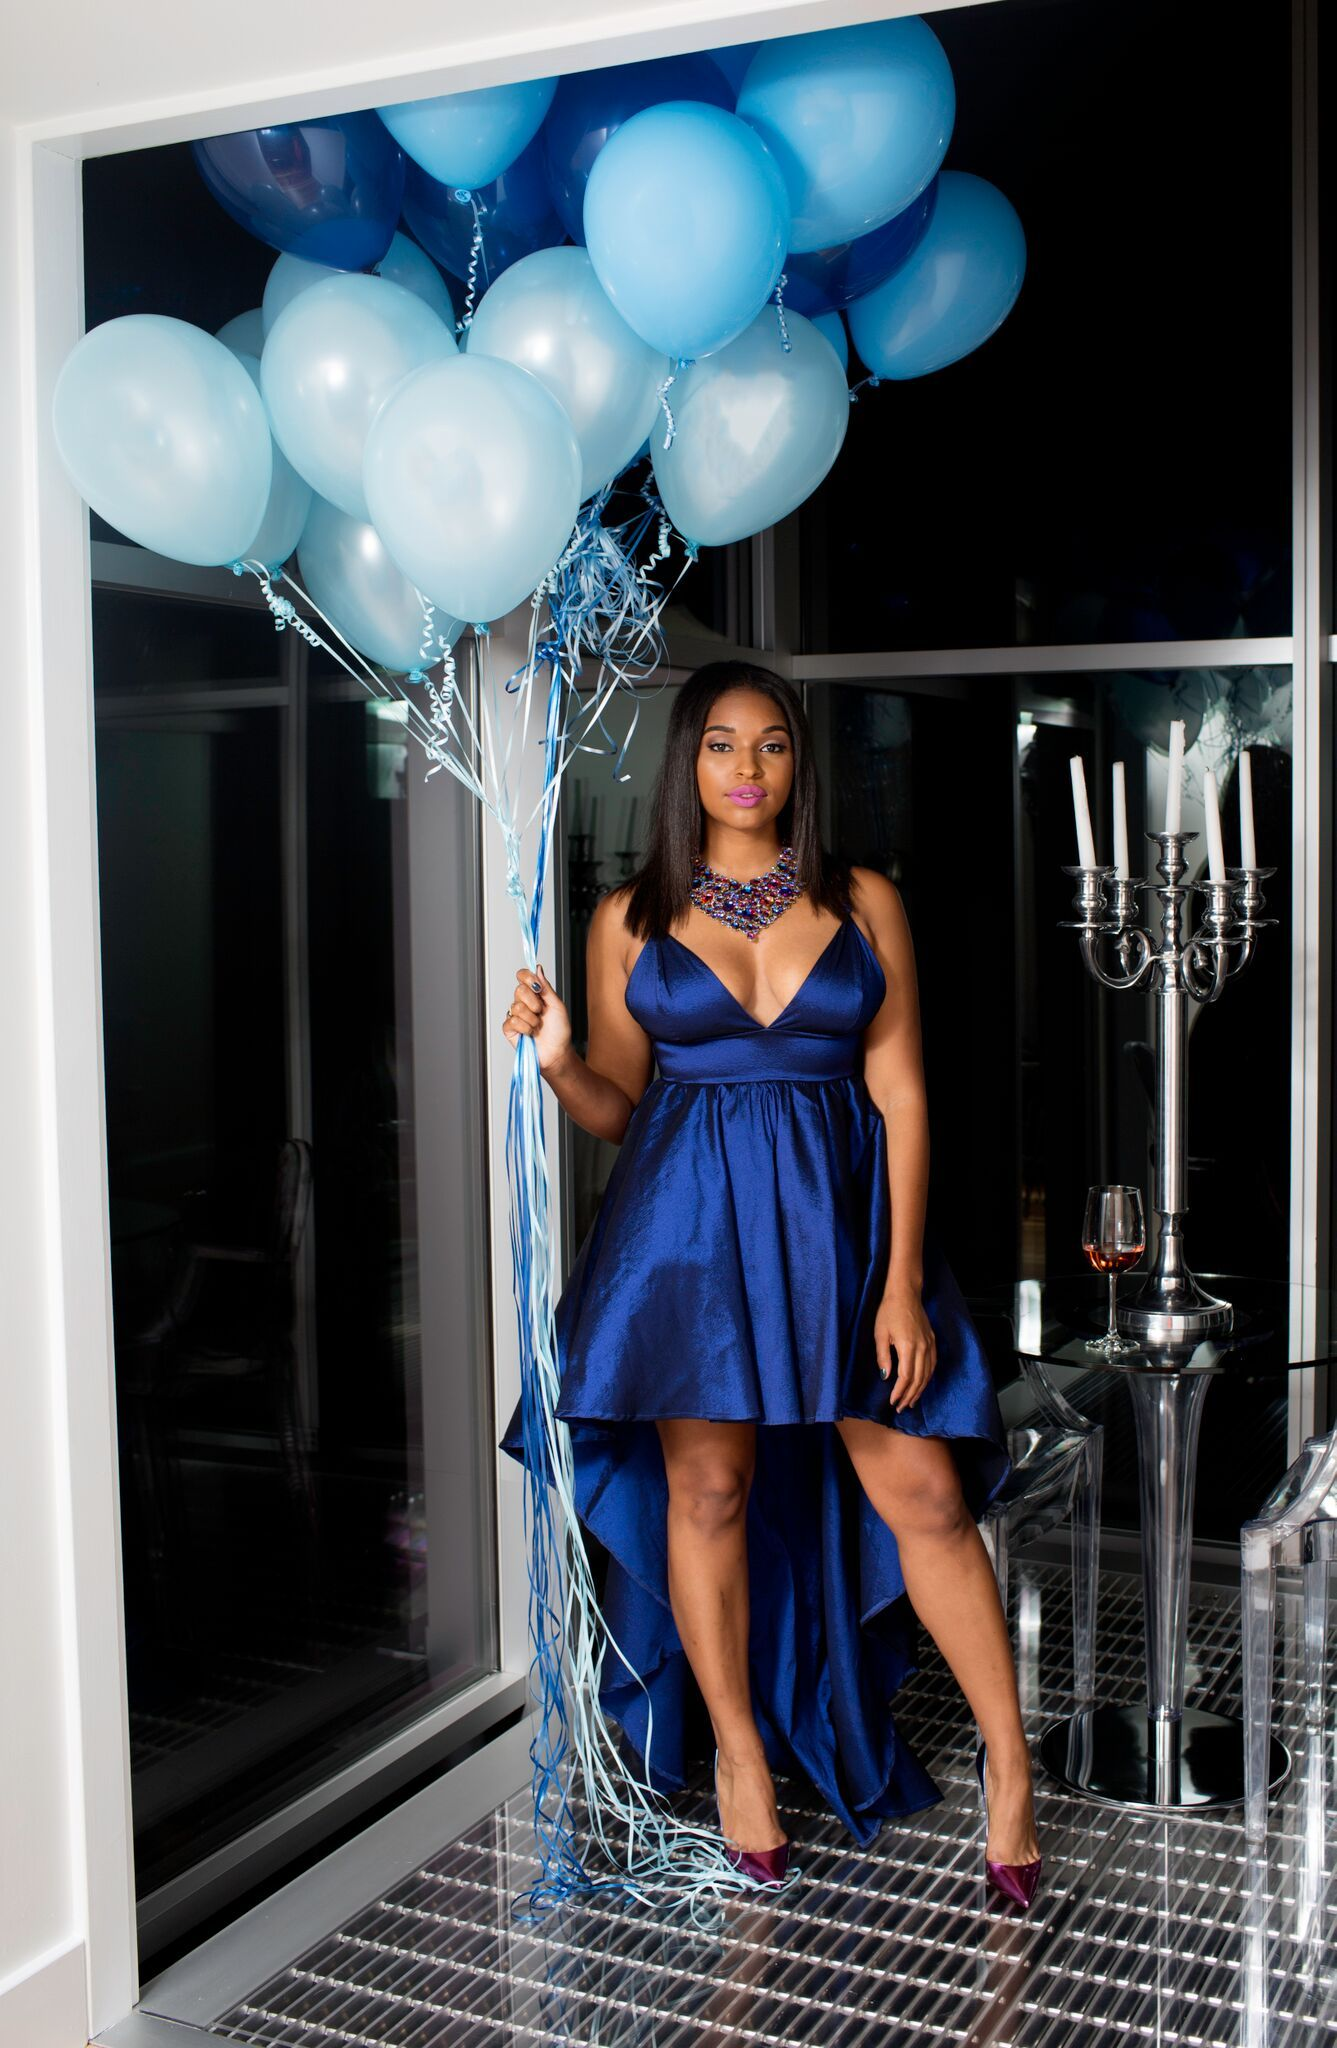 Birthday Outfits 30th Birthday Outfits Birthday Dresses Birthday Photoshoot Blue Gown Hi Lo Gown Birthday Photoshoot 30th Birthday Outfit Birthday Outfit [ 2048 x 1337 Pixel ]